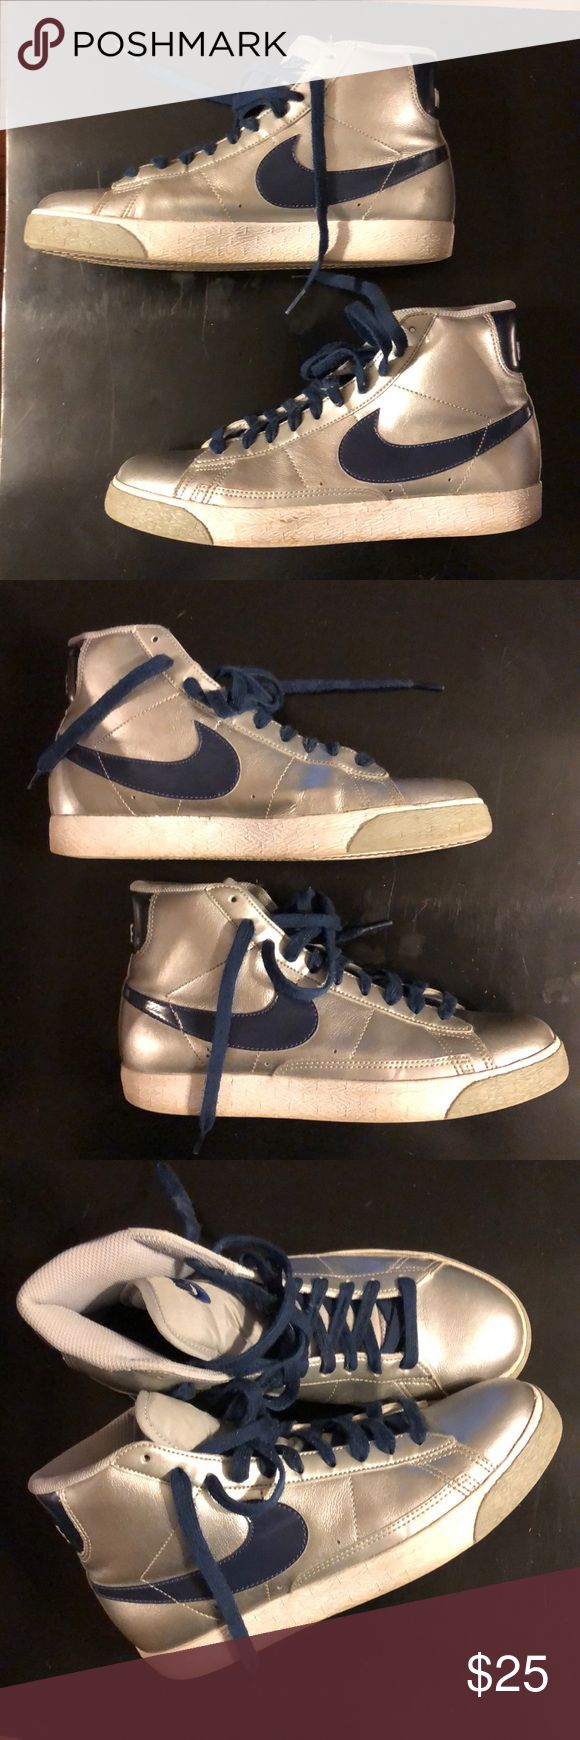 Silver & Navy Nike High Tops Y-6 W-7.5 Silver & Navy Nike High Tops I'm very good pre-owned condition. Youth Sz 6 which fits a Women's 7.5.  These are a rare find, Nike original High Tops. Nike Shoes Sneakers